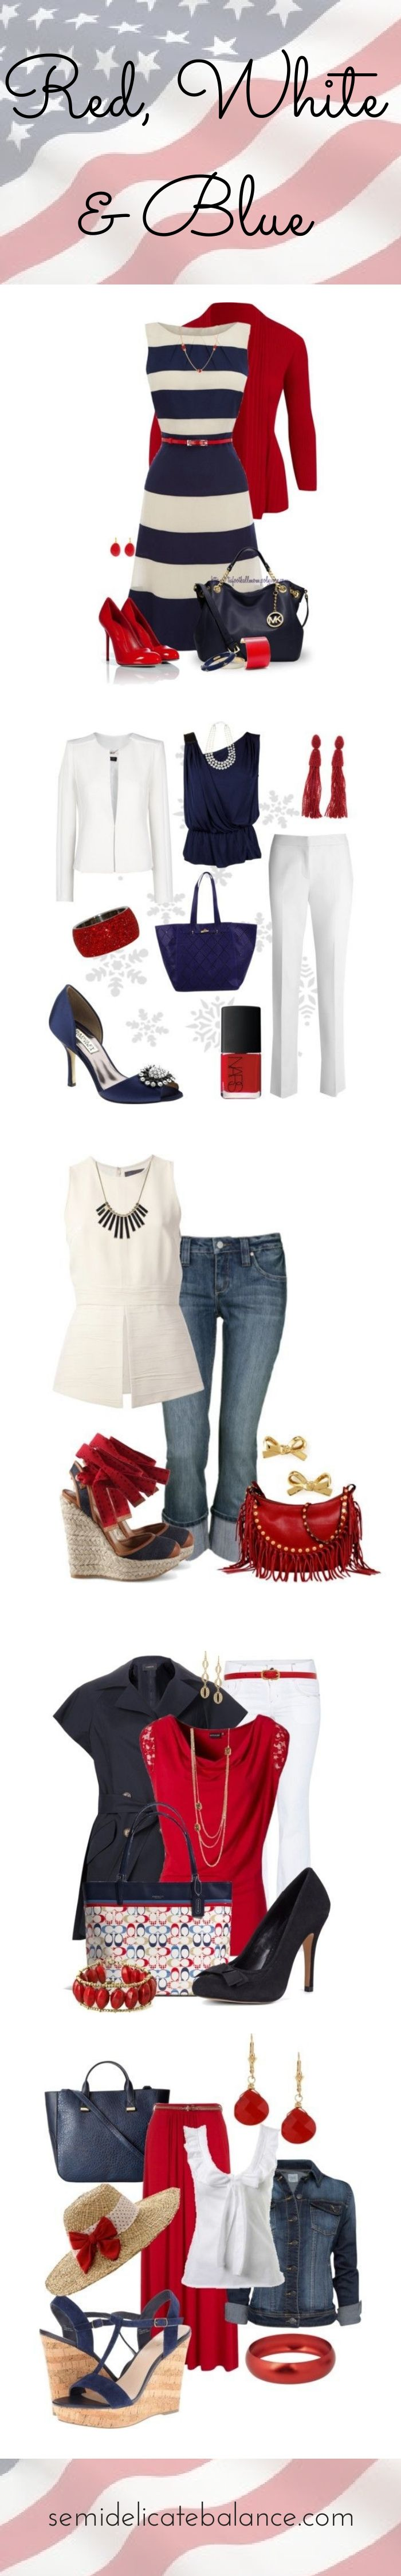 I'd wear any of these red white and blue outfits whether to show my love for nautical or my love of country and all things patriotic. The author suggests them for welcoming home a loved one from military deployment.